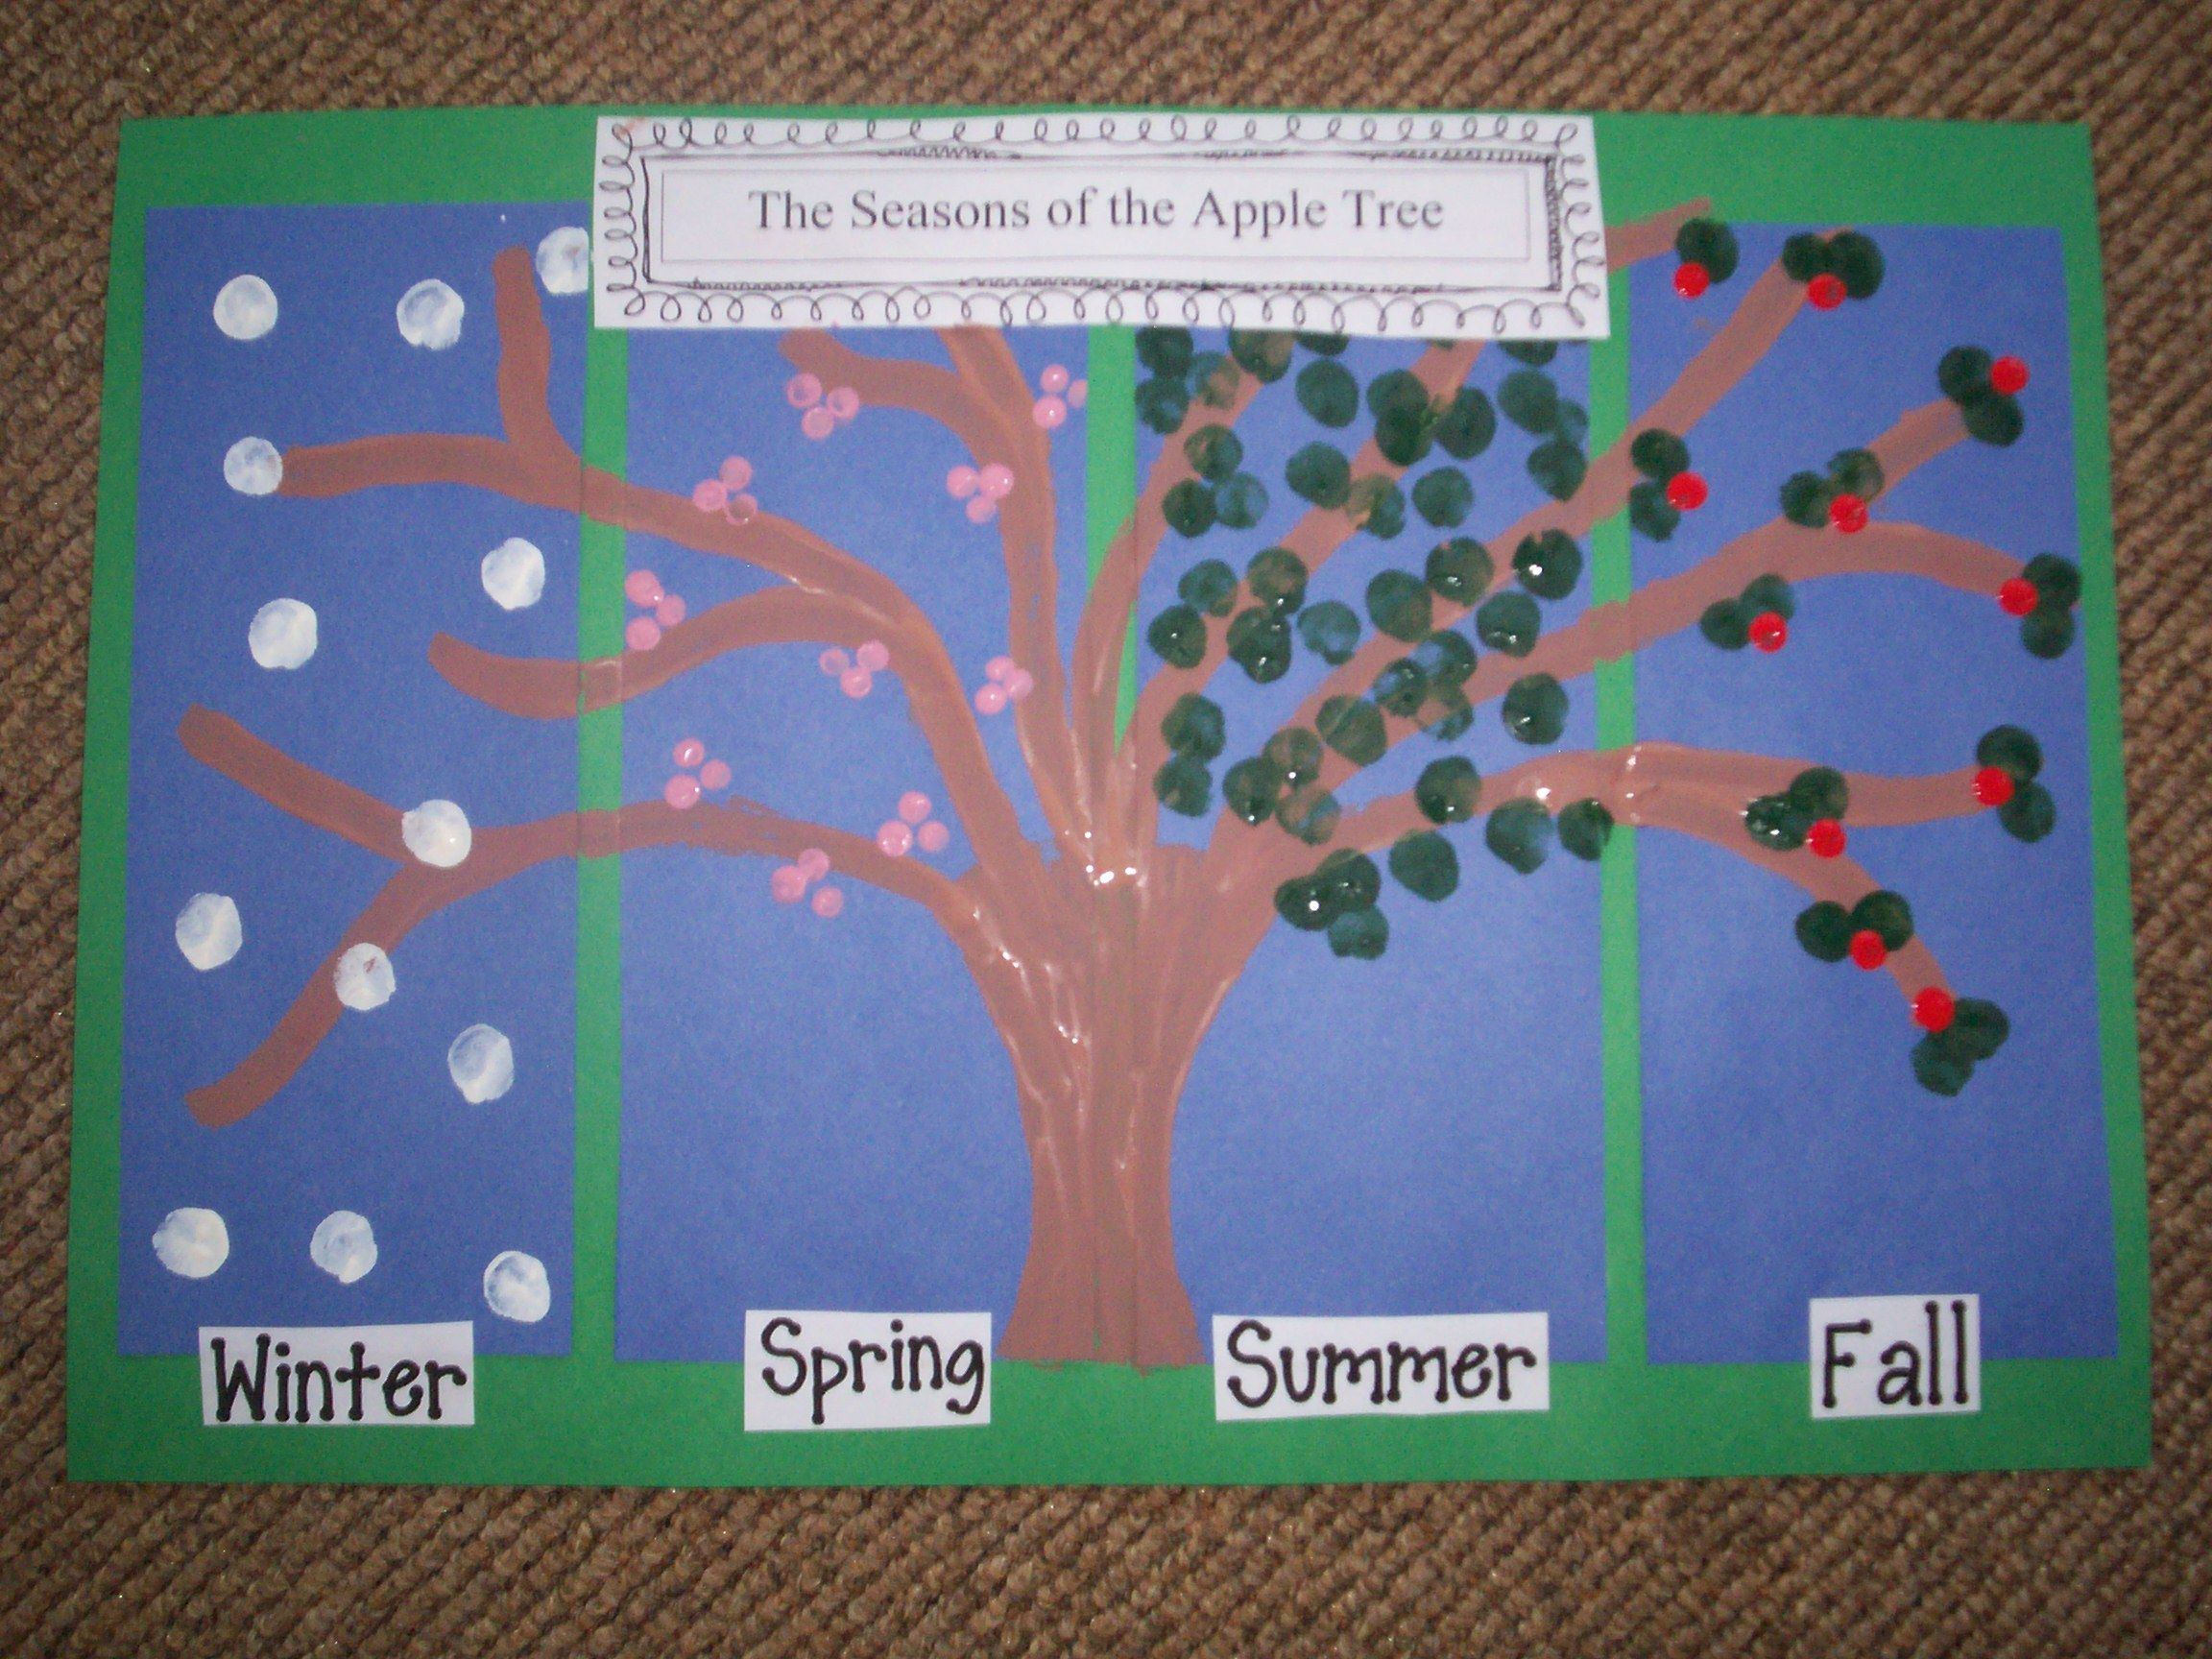 Grade 1 Cluster 4 Daily And Seasonal Changes Seasons Of The Apple Tree Art Project